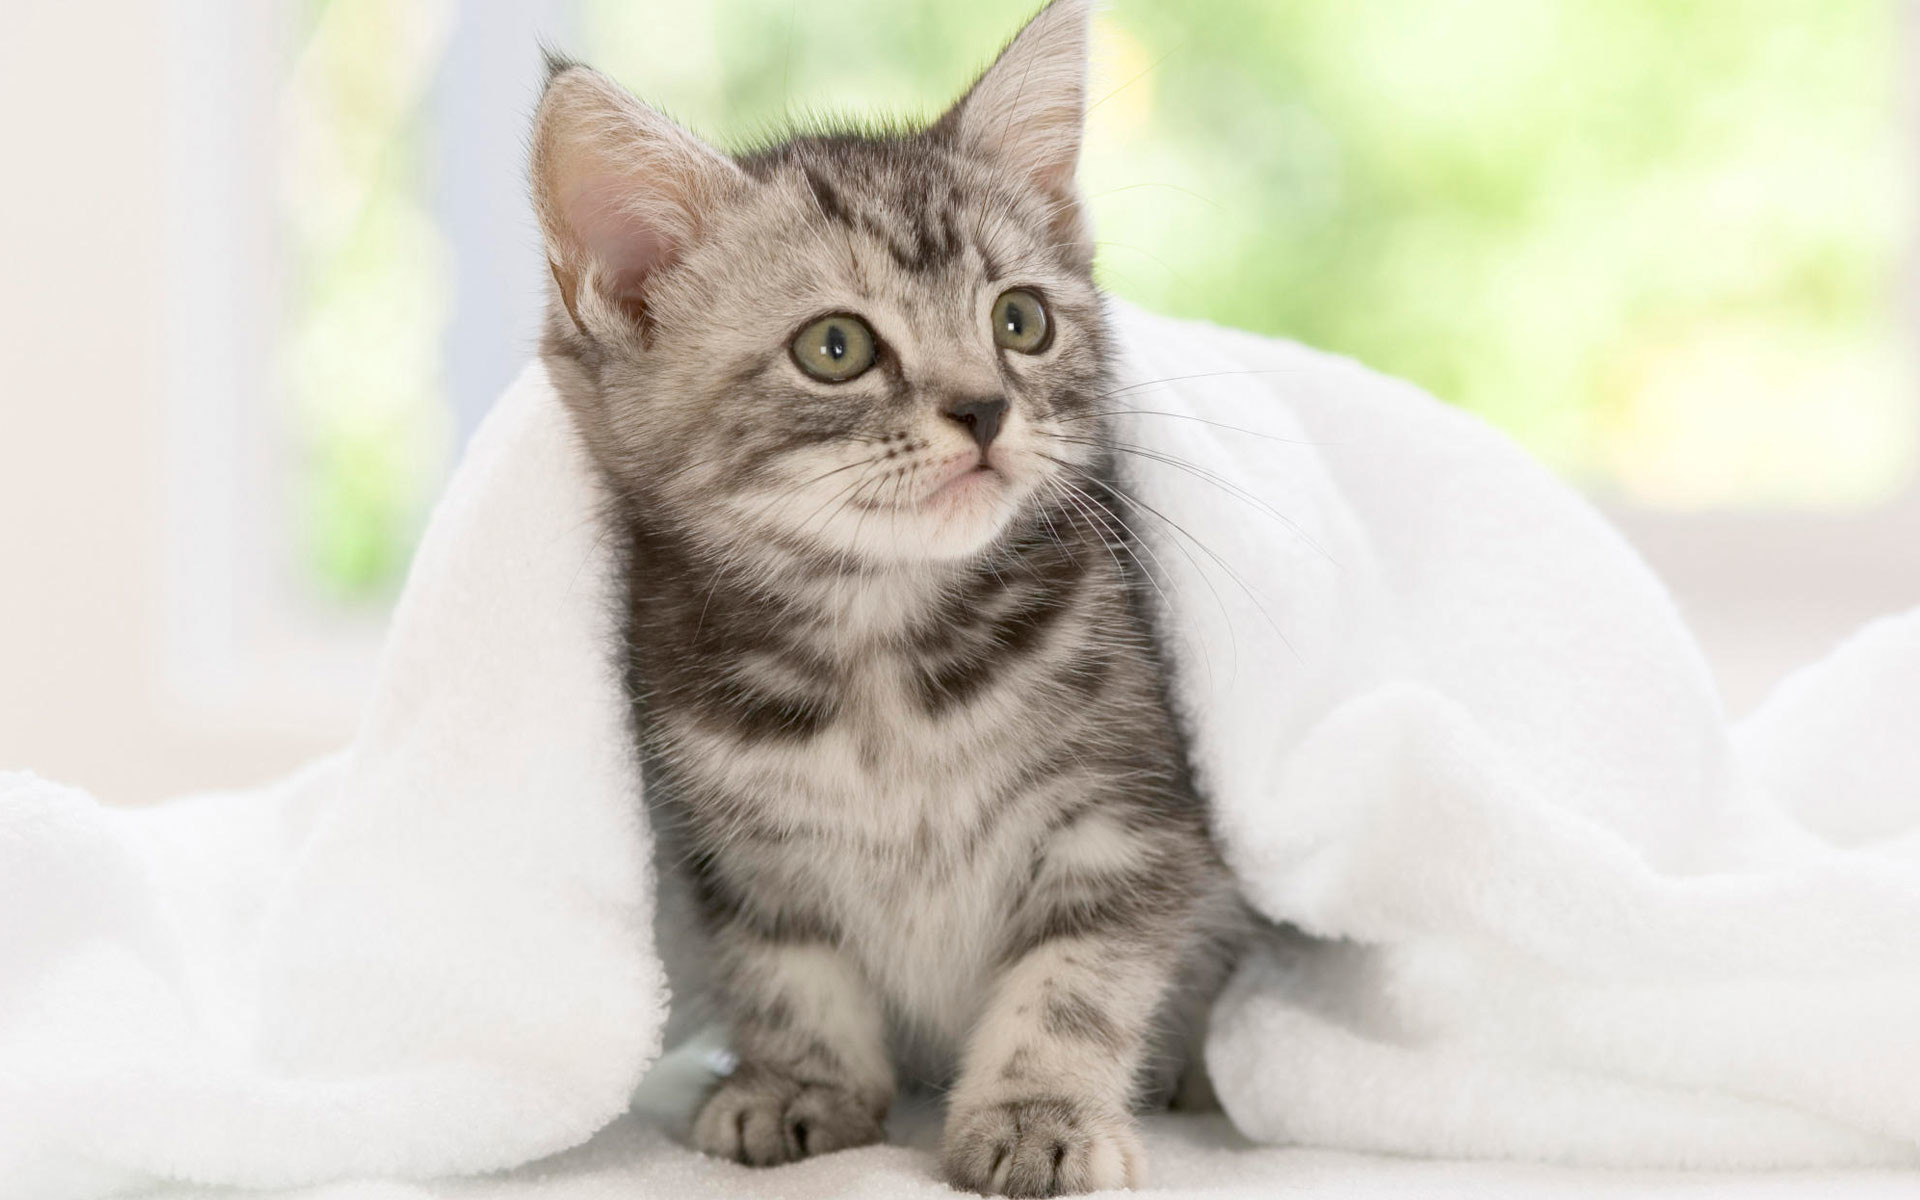 Cute Kitten Desktop Wallpaper 60 Images